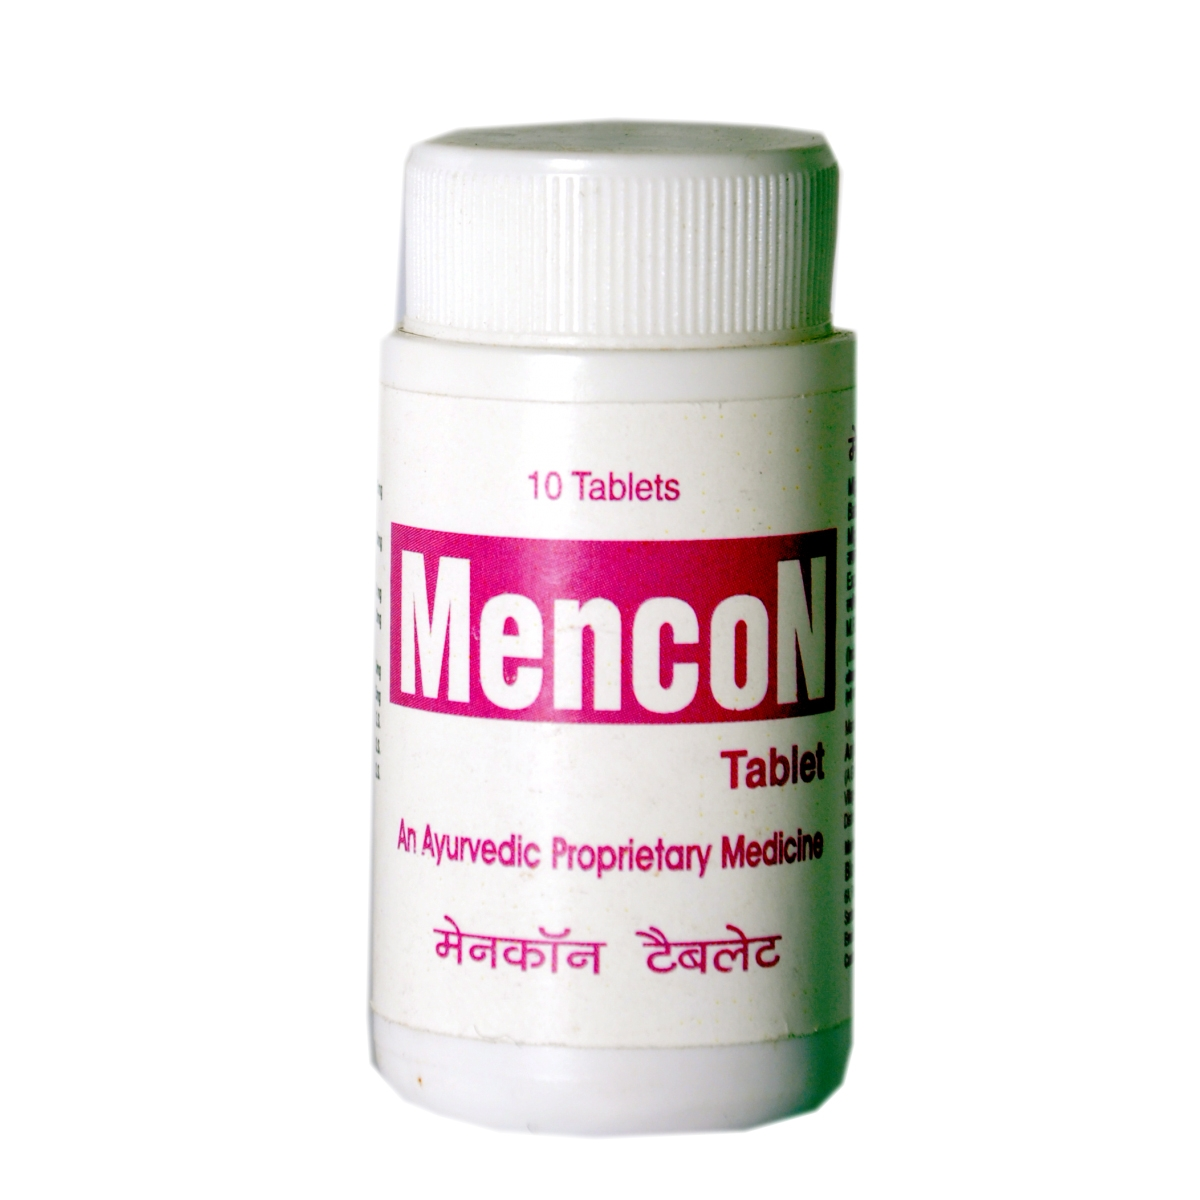 Mencon Tablet In Dharamsala